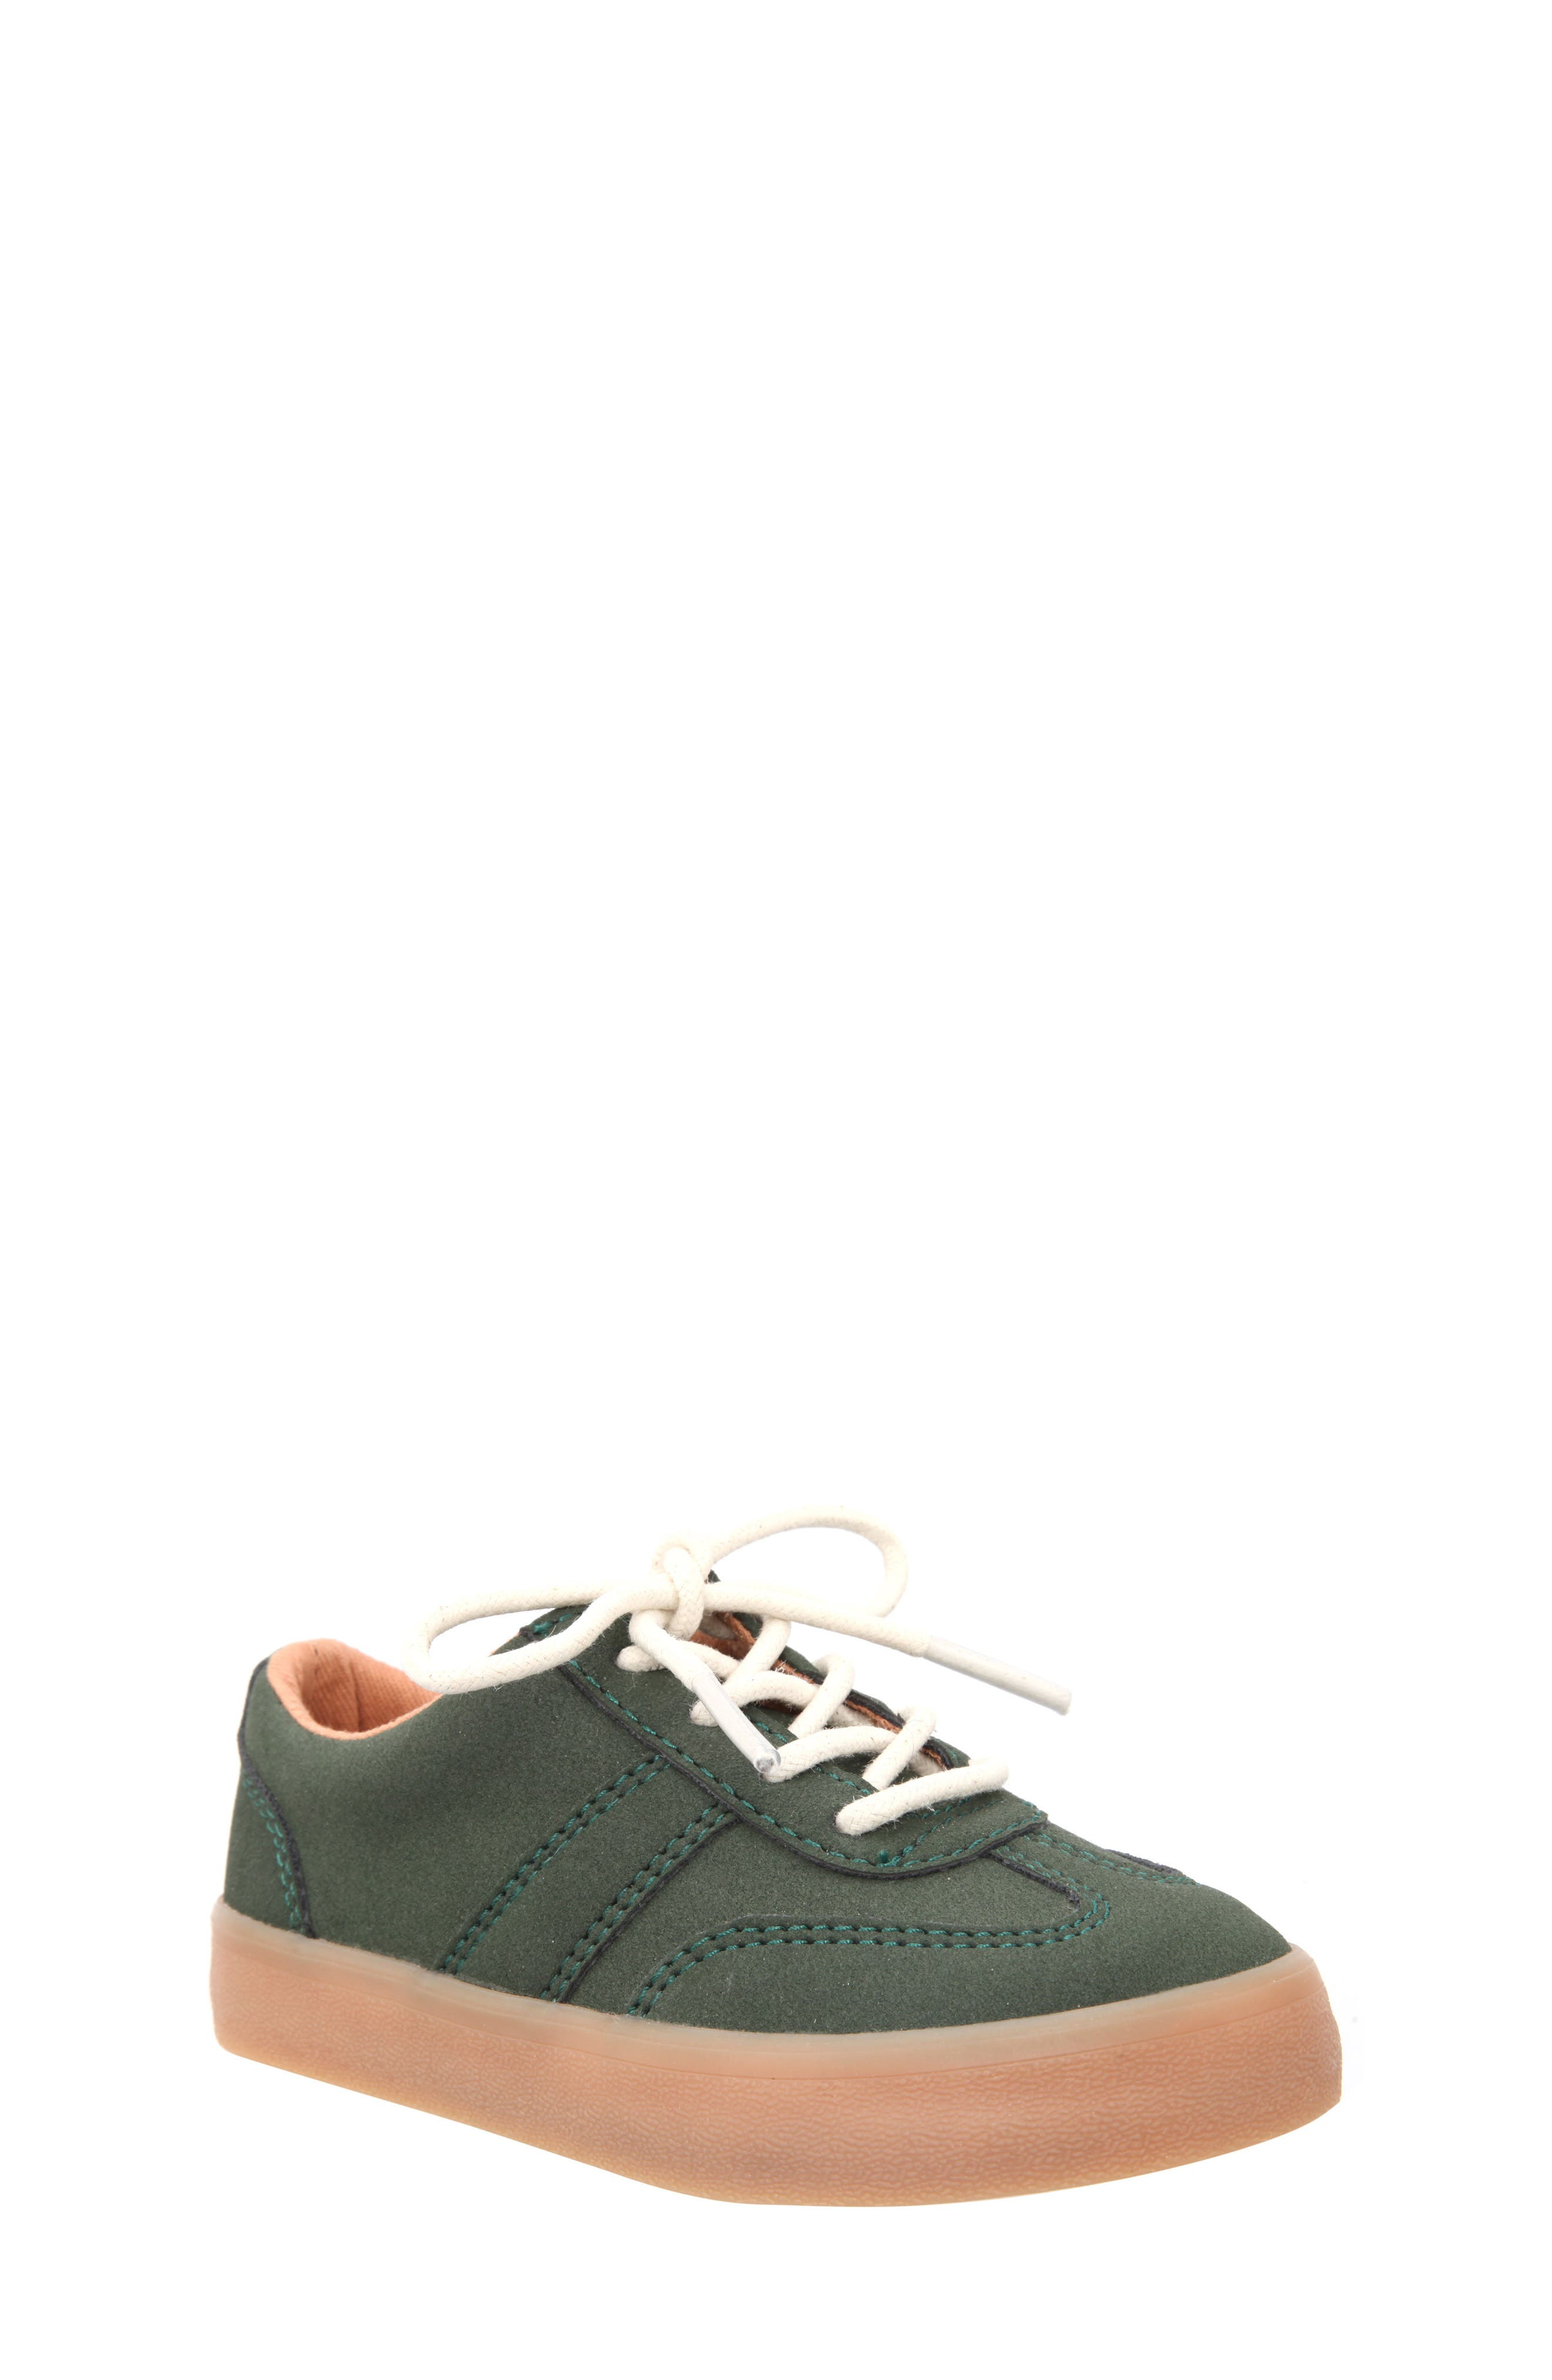 Neal Low Top Sneaker,                             Main thumbnail 1, color,                             Olive Suede